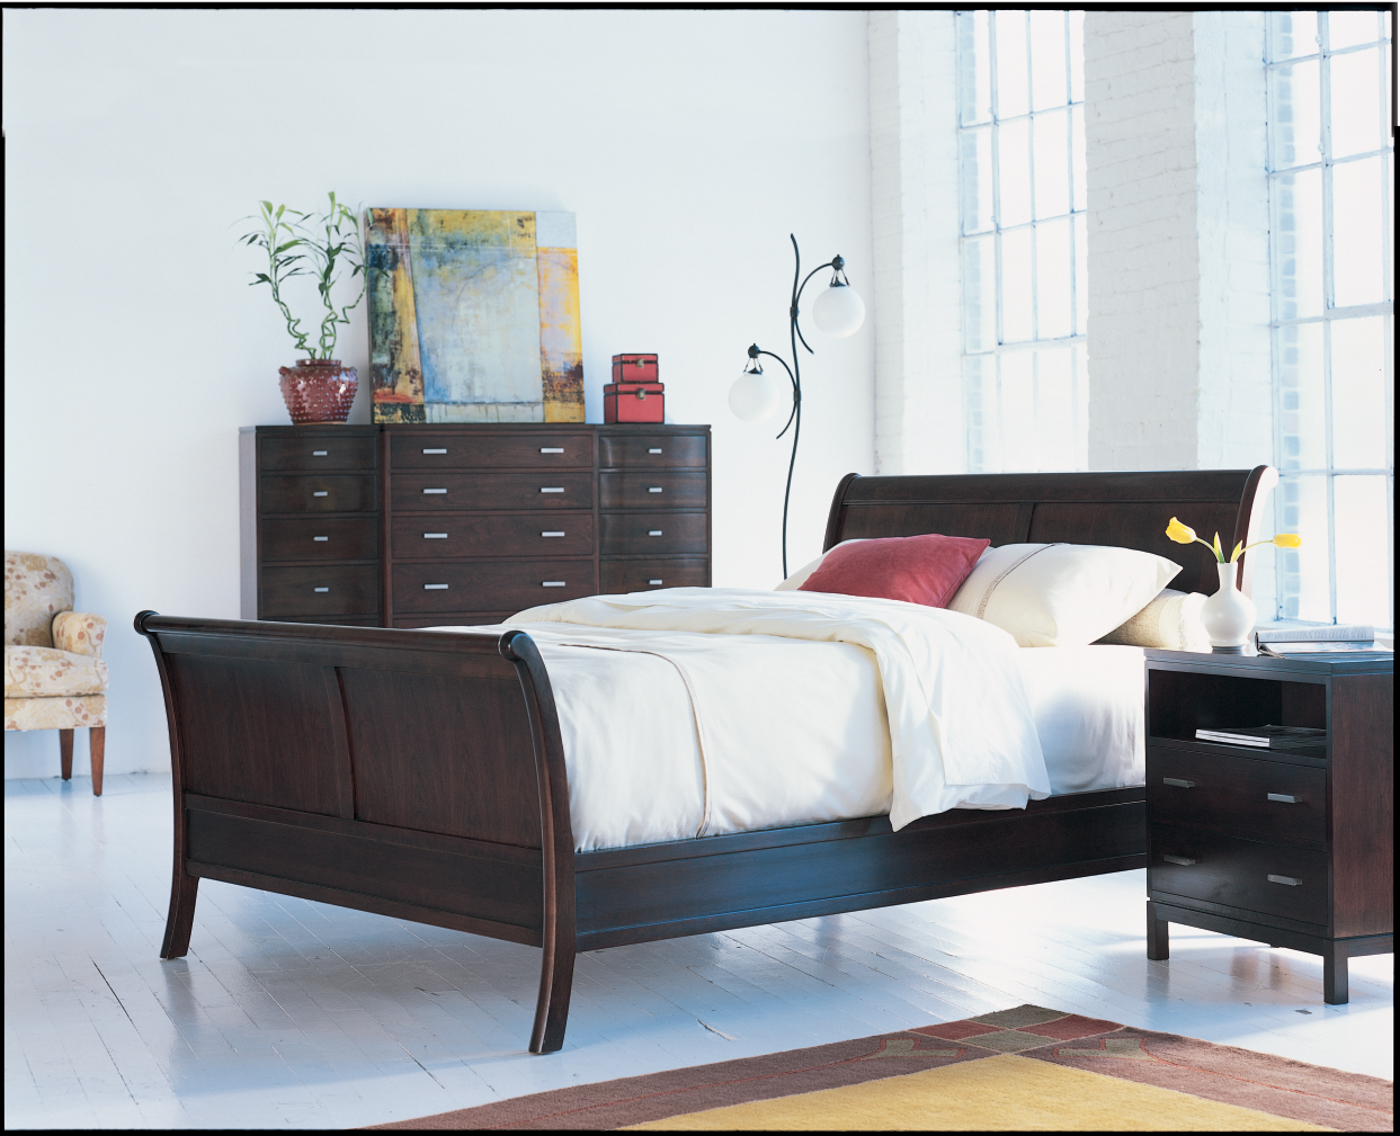 Inspiration gallery reid 39 s fine furnishings for Bedroom designs with sleigh beds